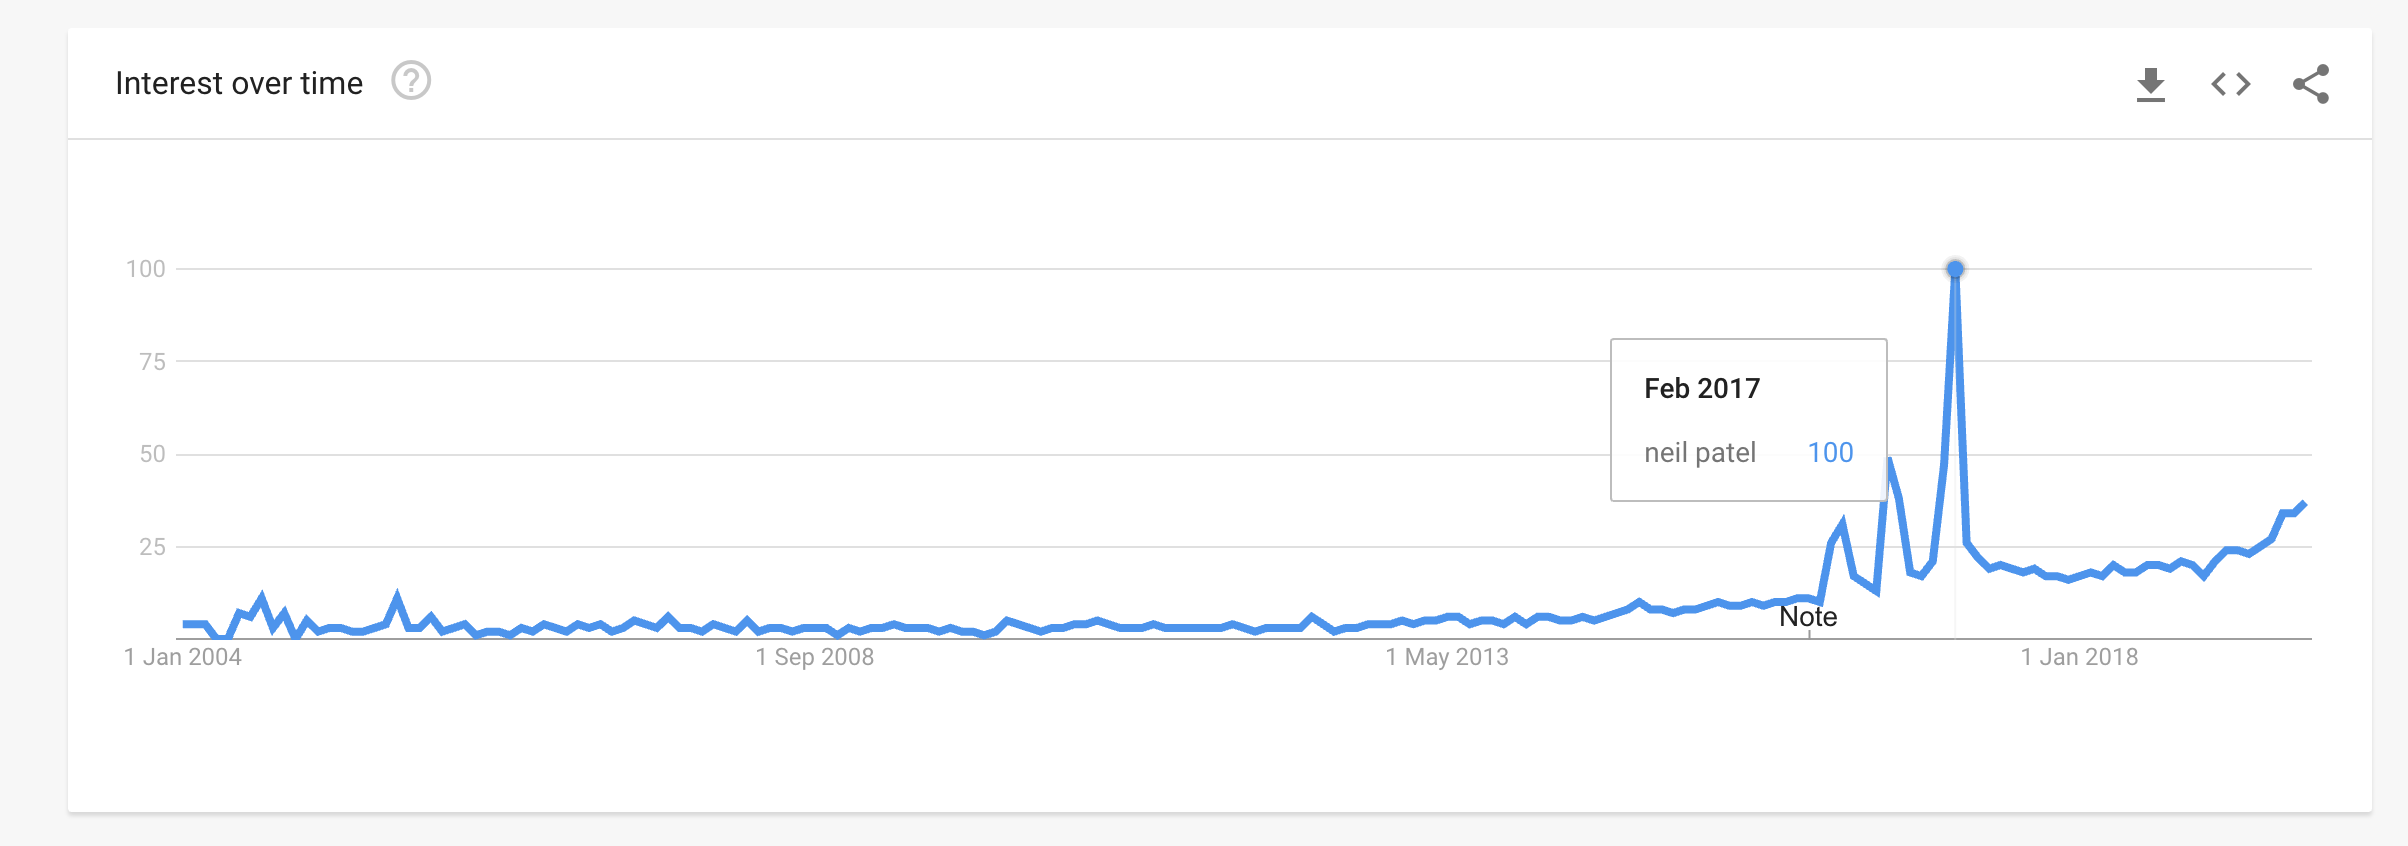 neil patel chart on Google Trends